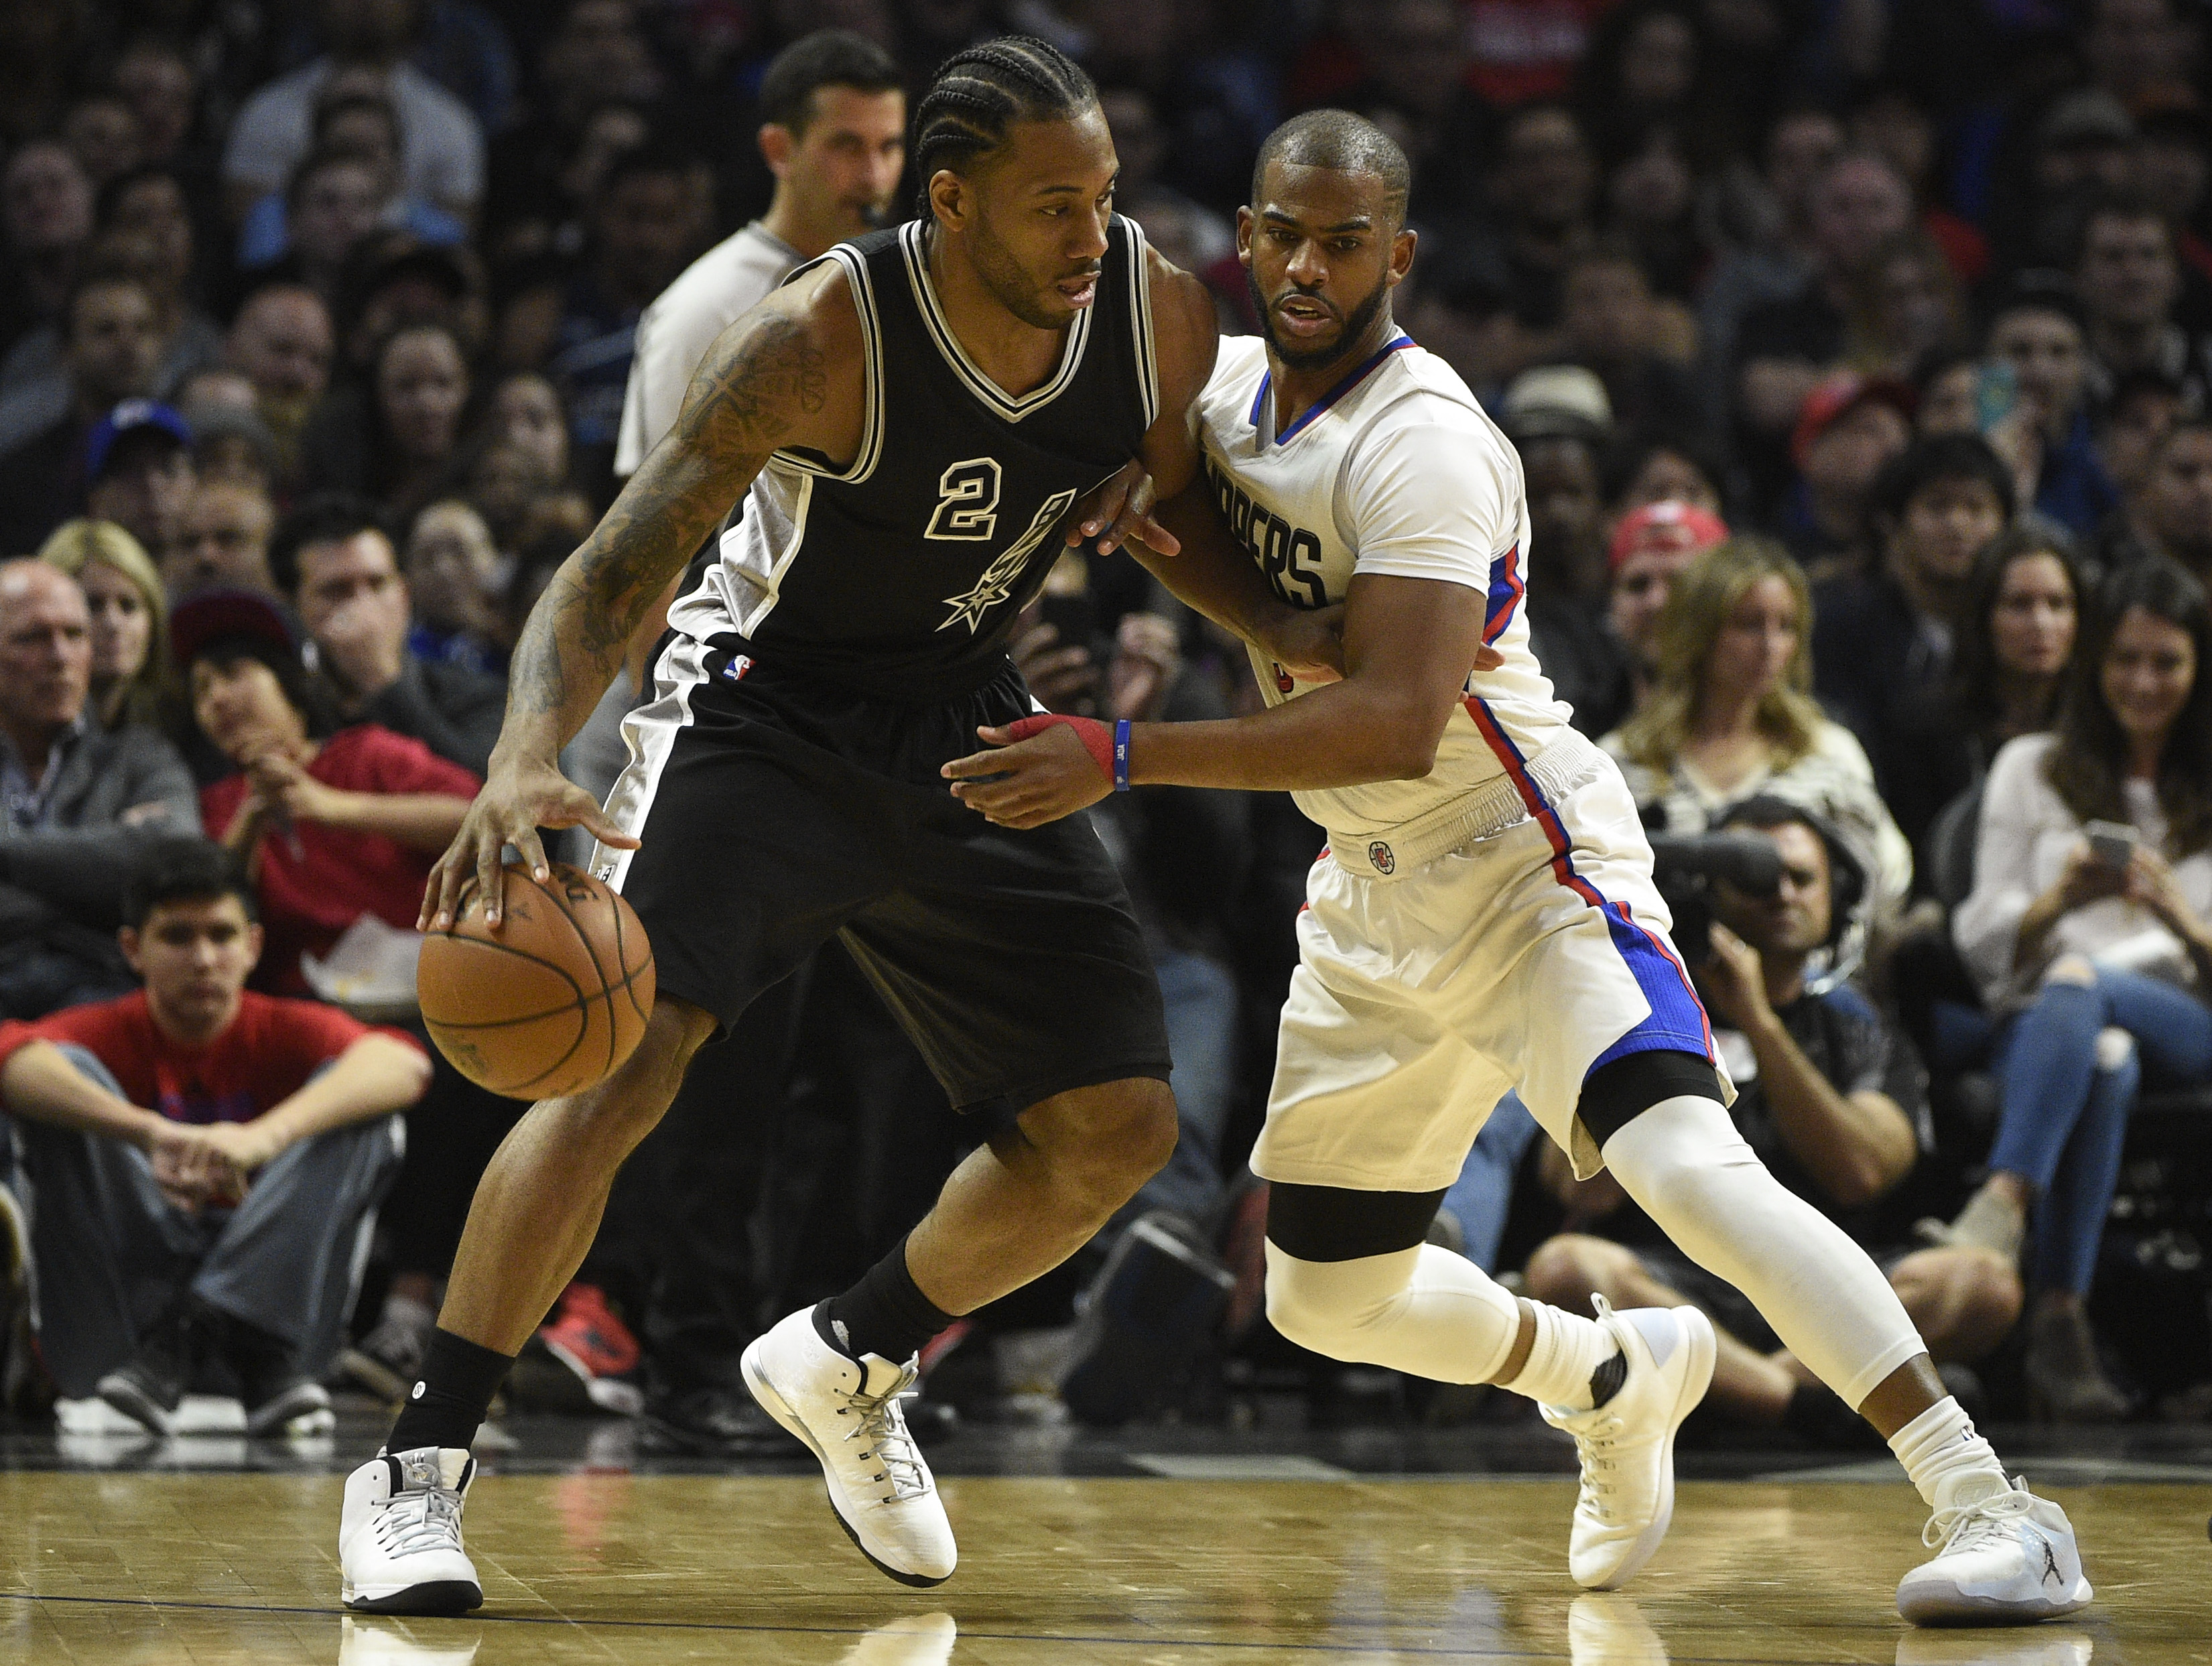 9898167-nba-san-antonio-spurs-at-los-angeles-clippers